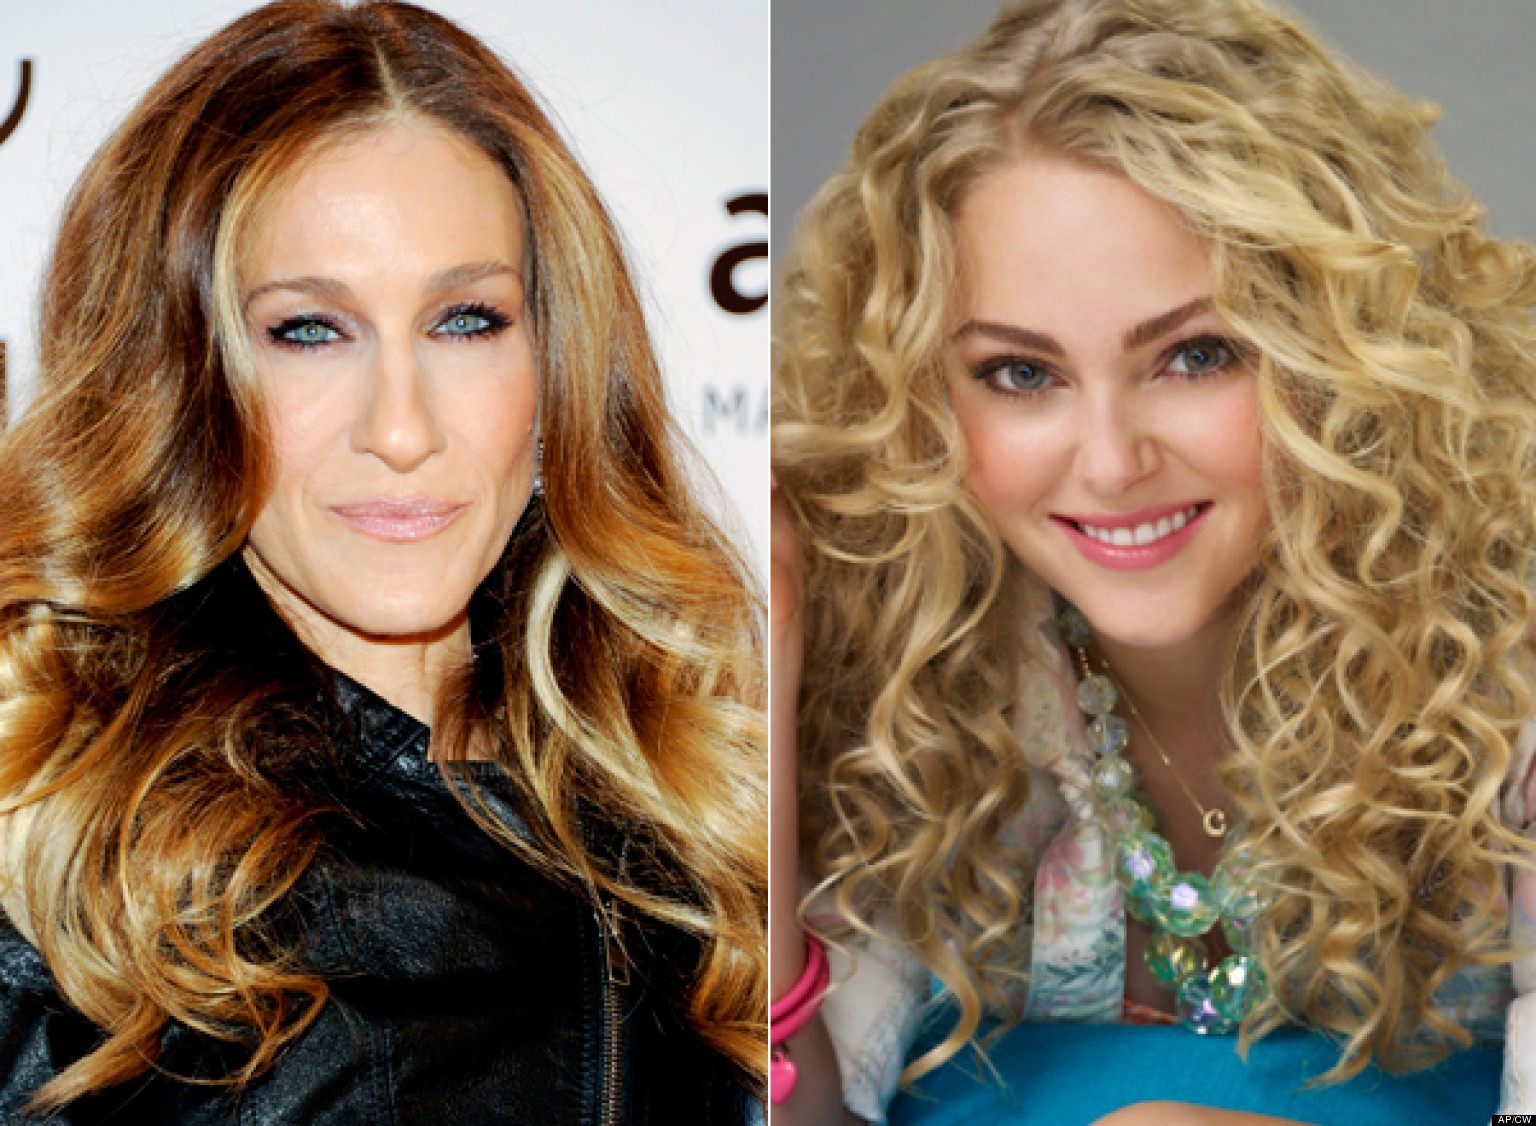 Sarah Jessica Parker On The Carrie Carrie Diaries Actress Turned Down Offer To Appear On Cw